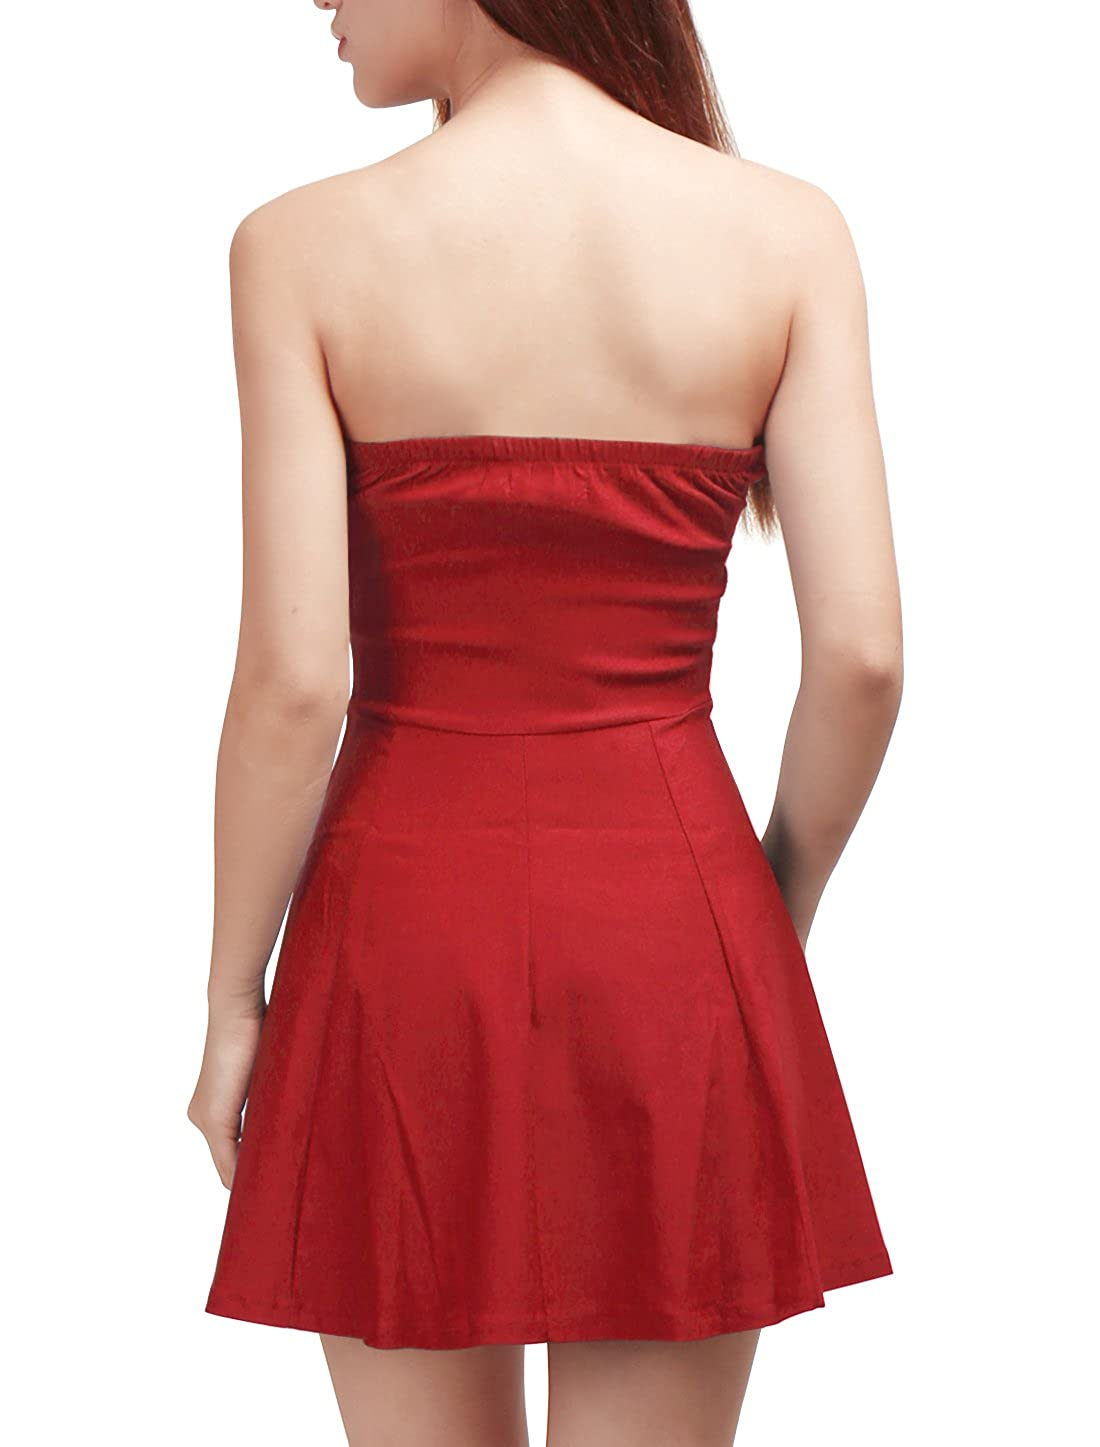 Allegra K Womens Strapless Exposed Front Zipper Party Backless A-Line Bodycon Mini Dress